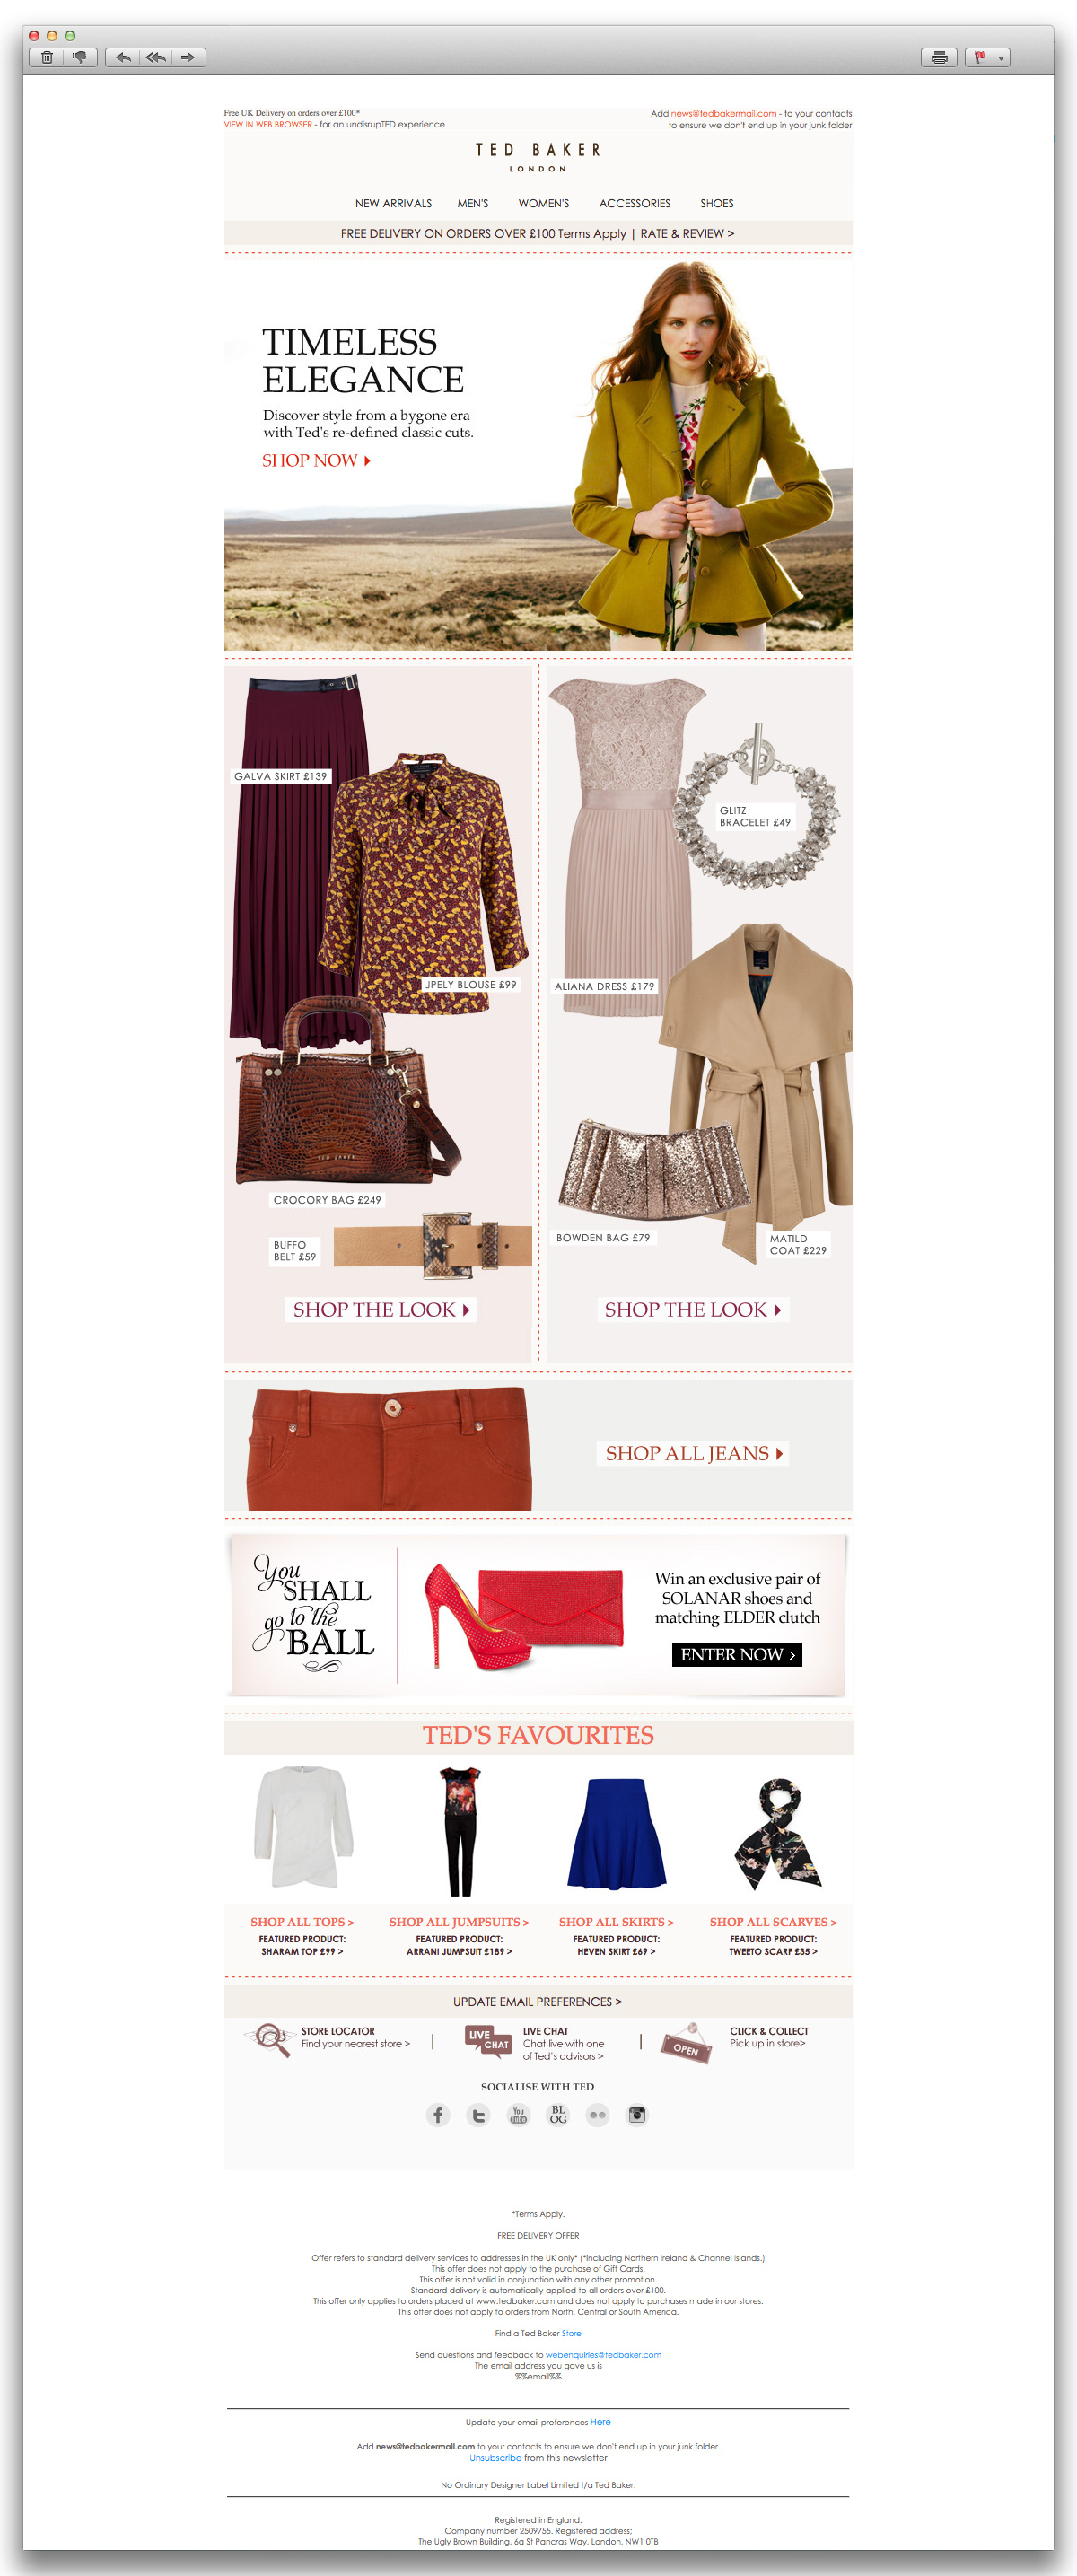 Ted Baker HTML email